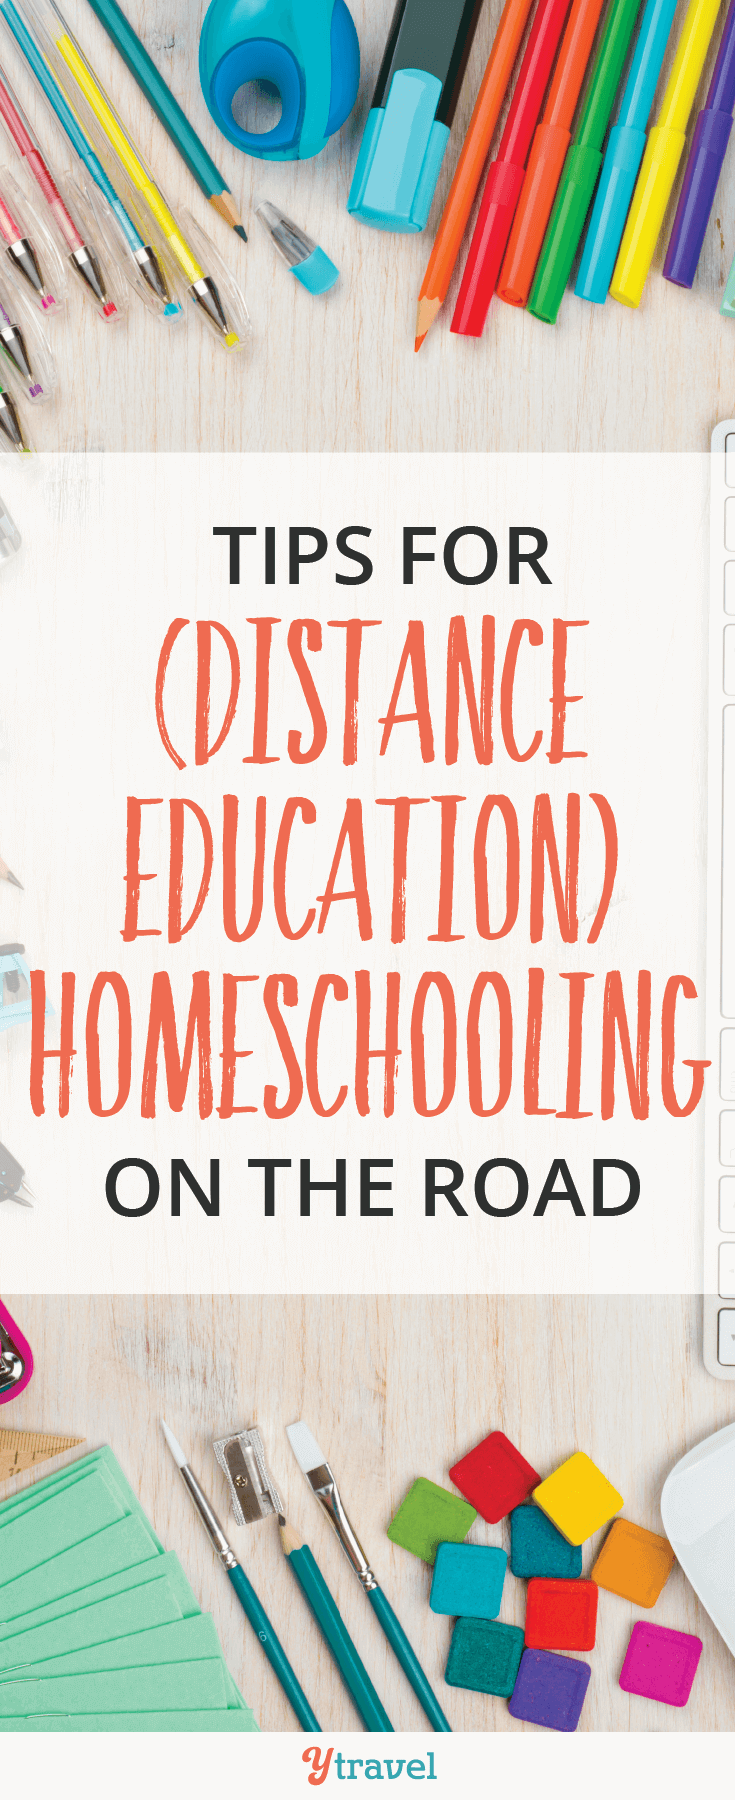 Check out these tips for distance education homeschooling on the road!